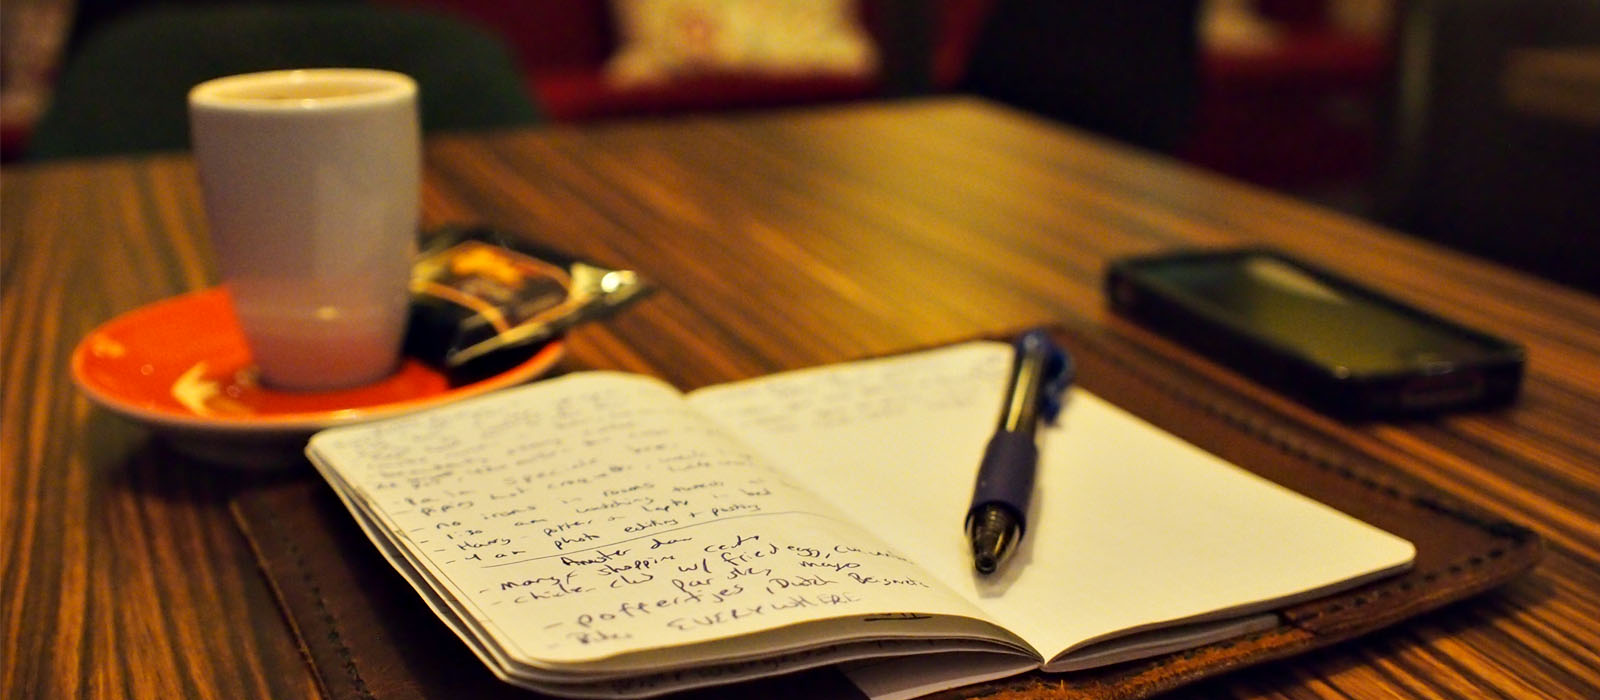 12 Things I've Learned About Writing, One Year Later